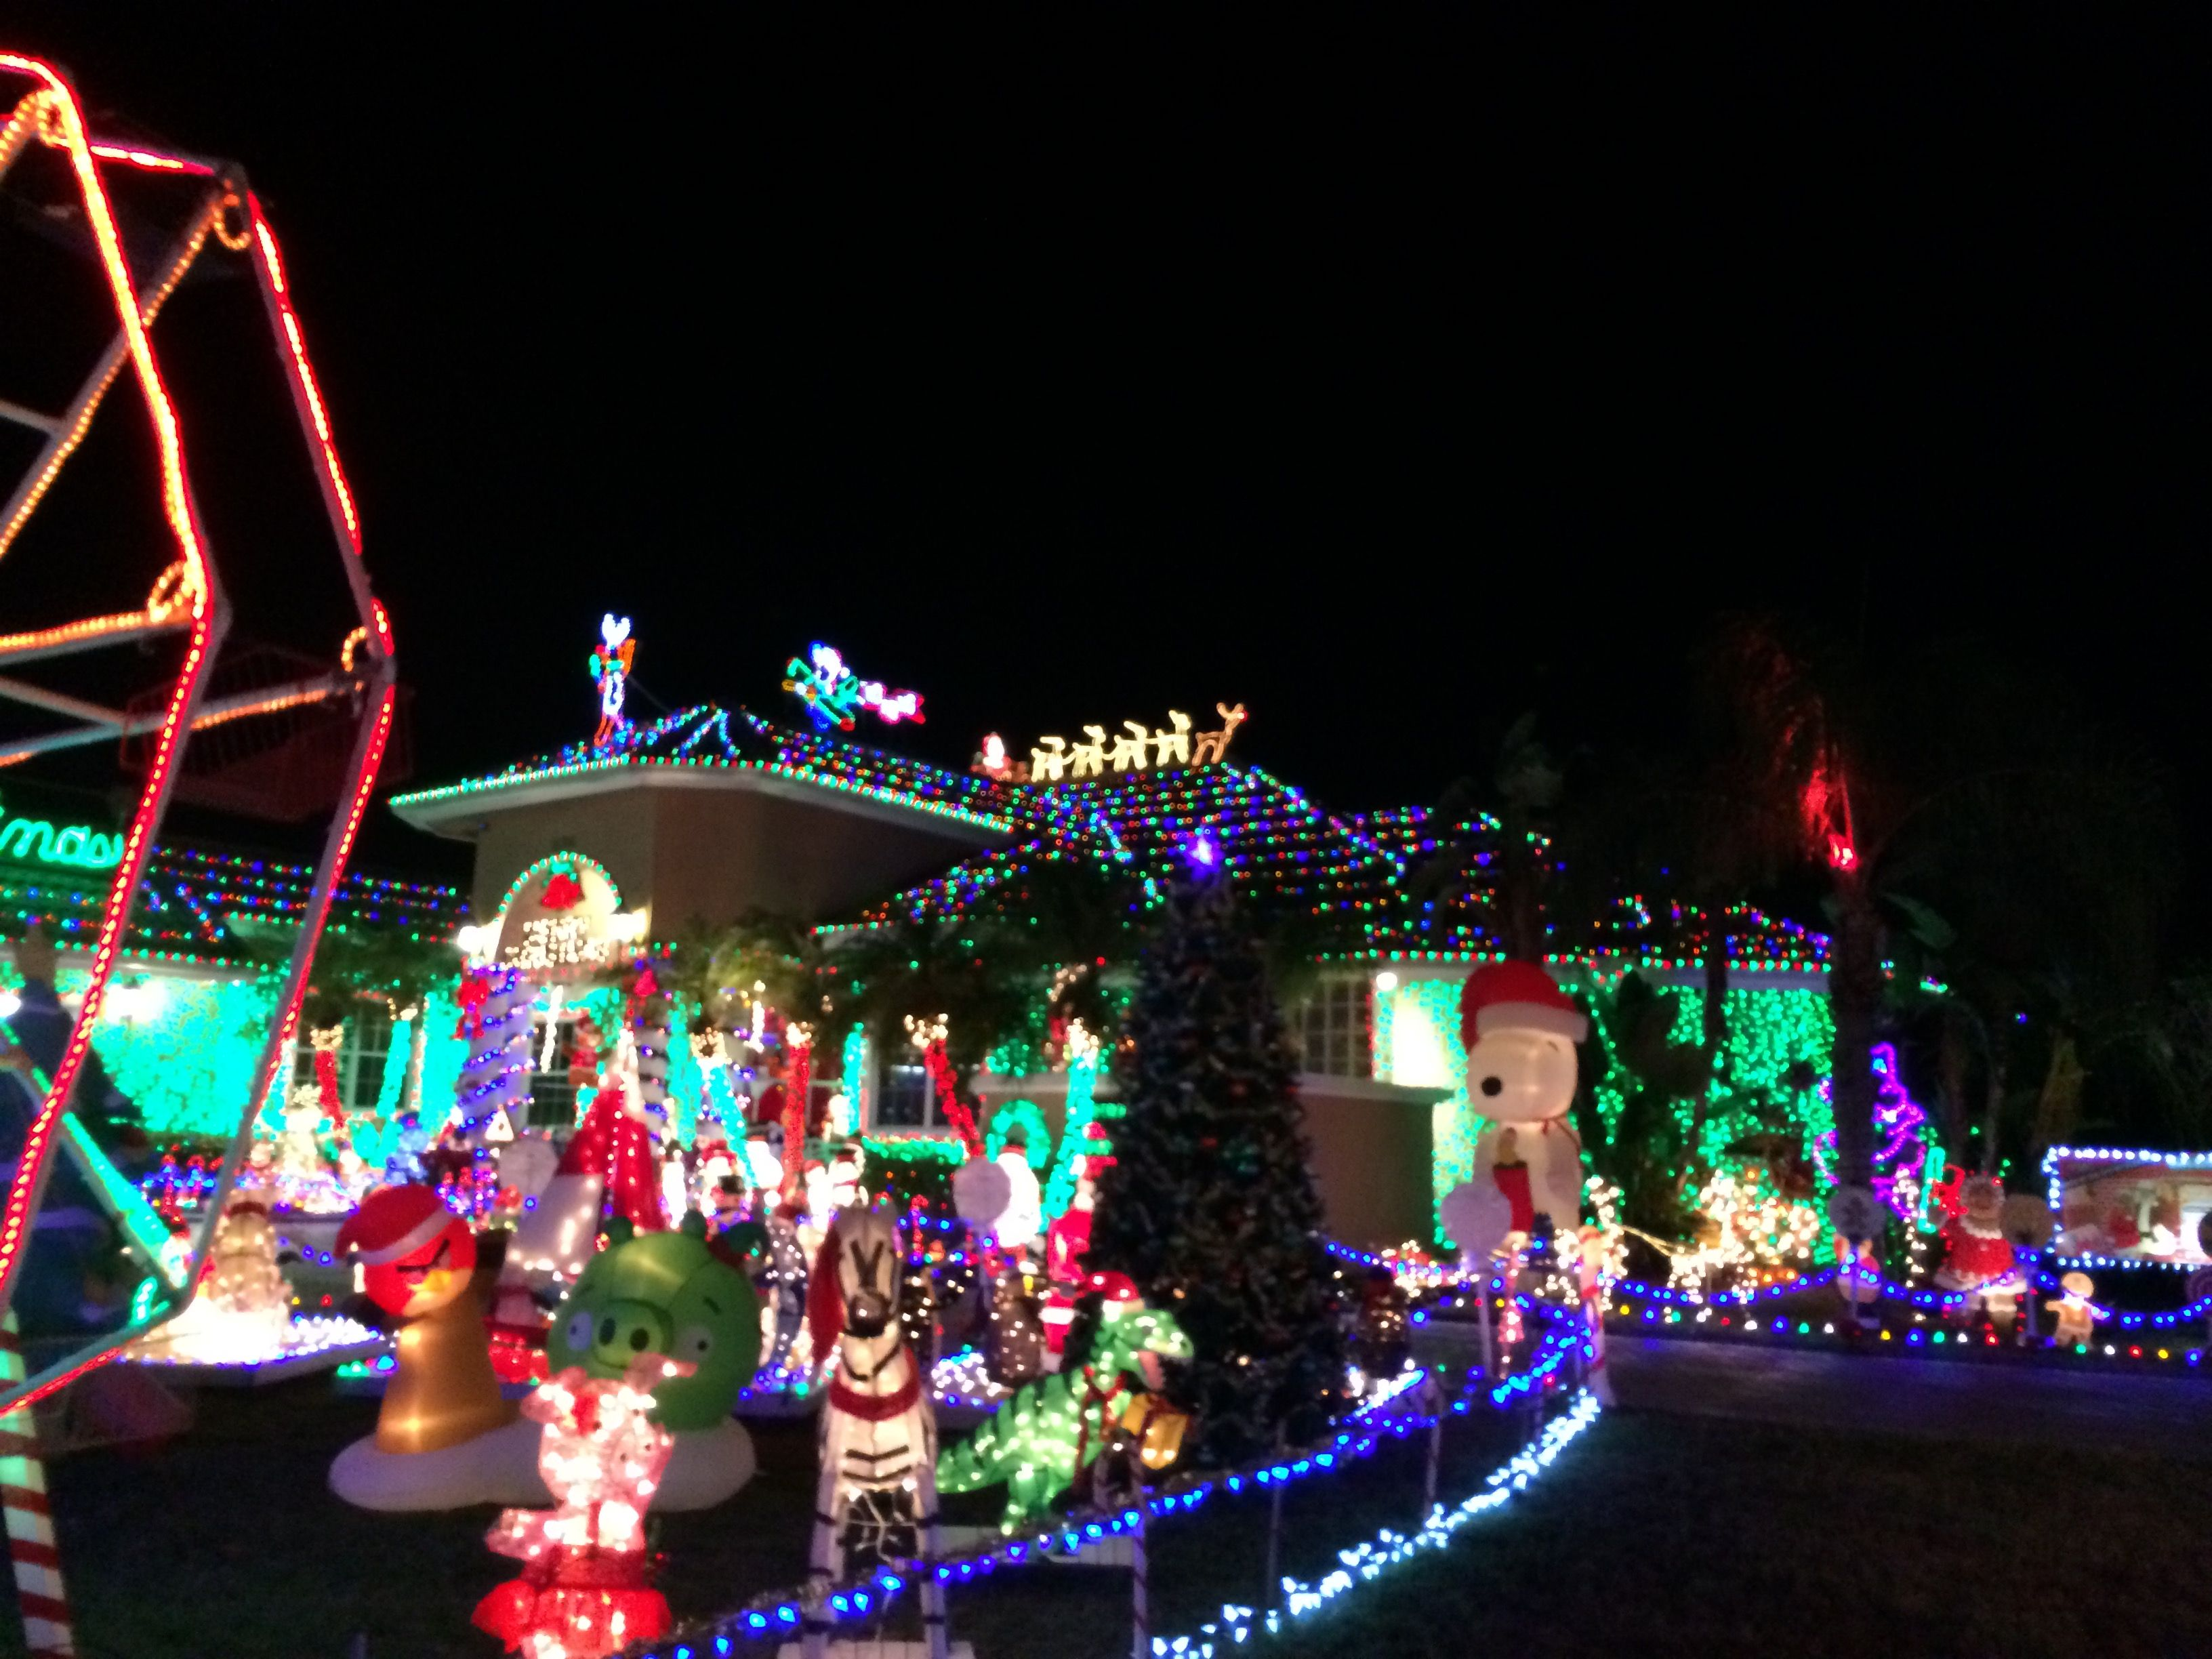 Pin by Andrea McDonough on Christmas lights & Holidays in FL 2015 ...